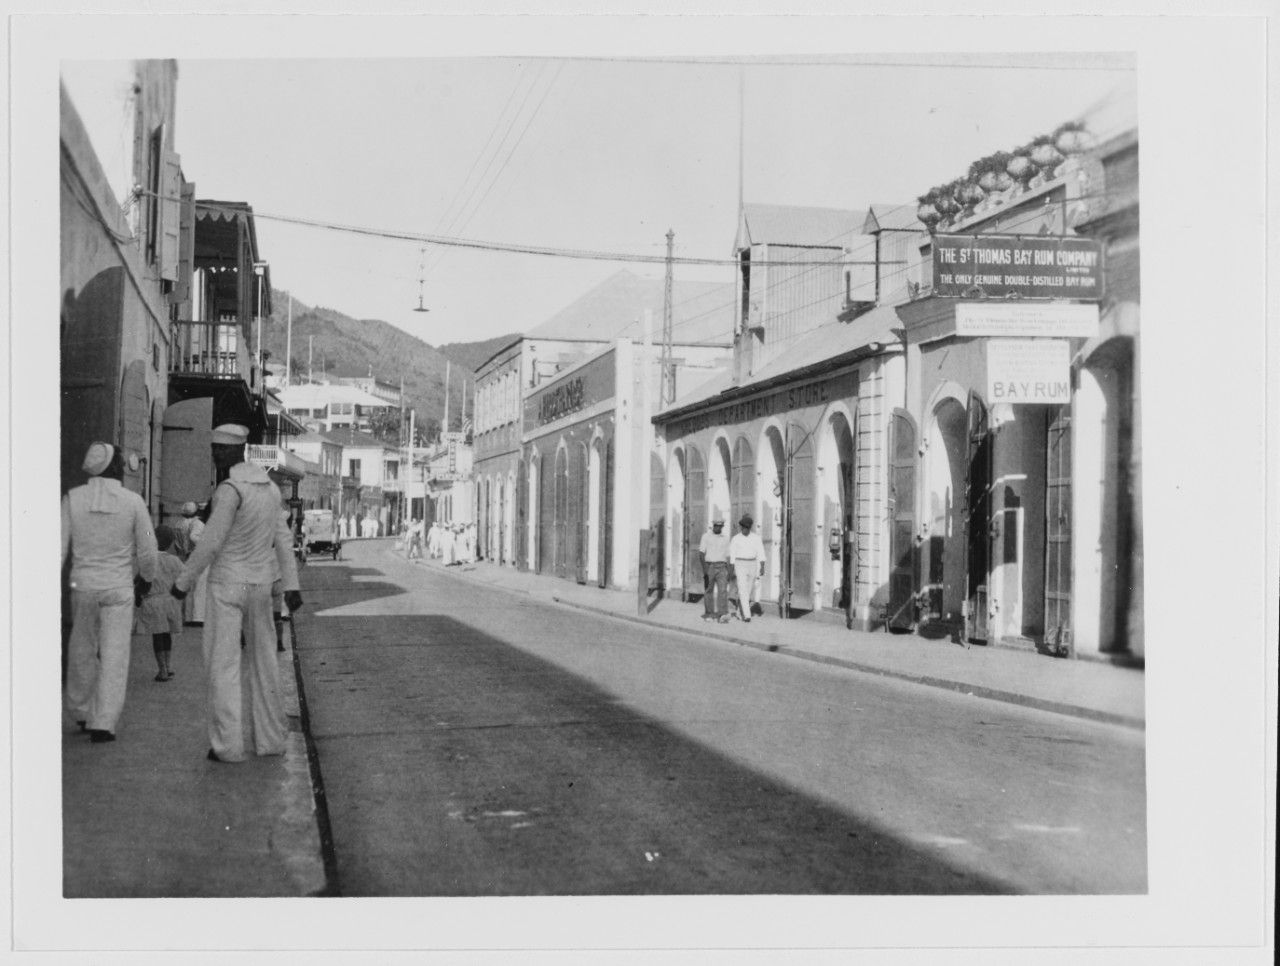 Street scene, with sailors on Liberty, circa 1928. Note